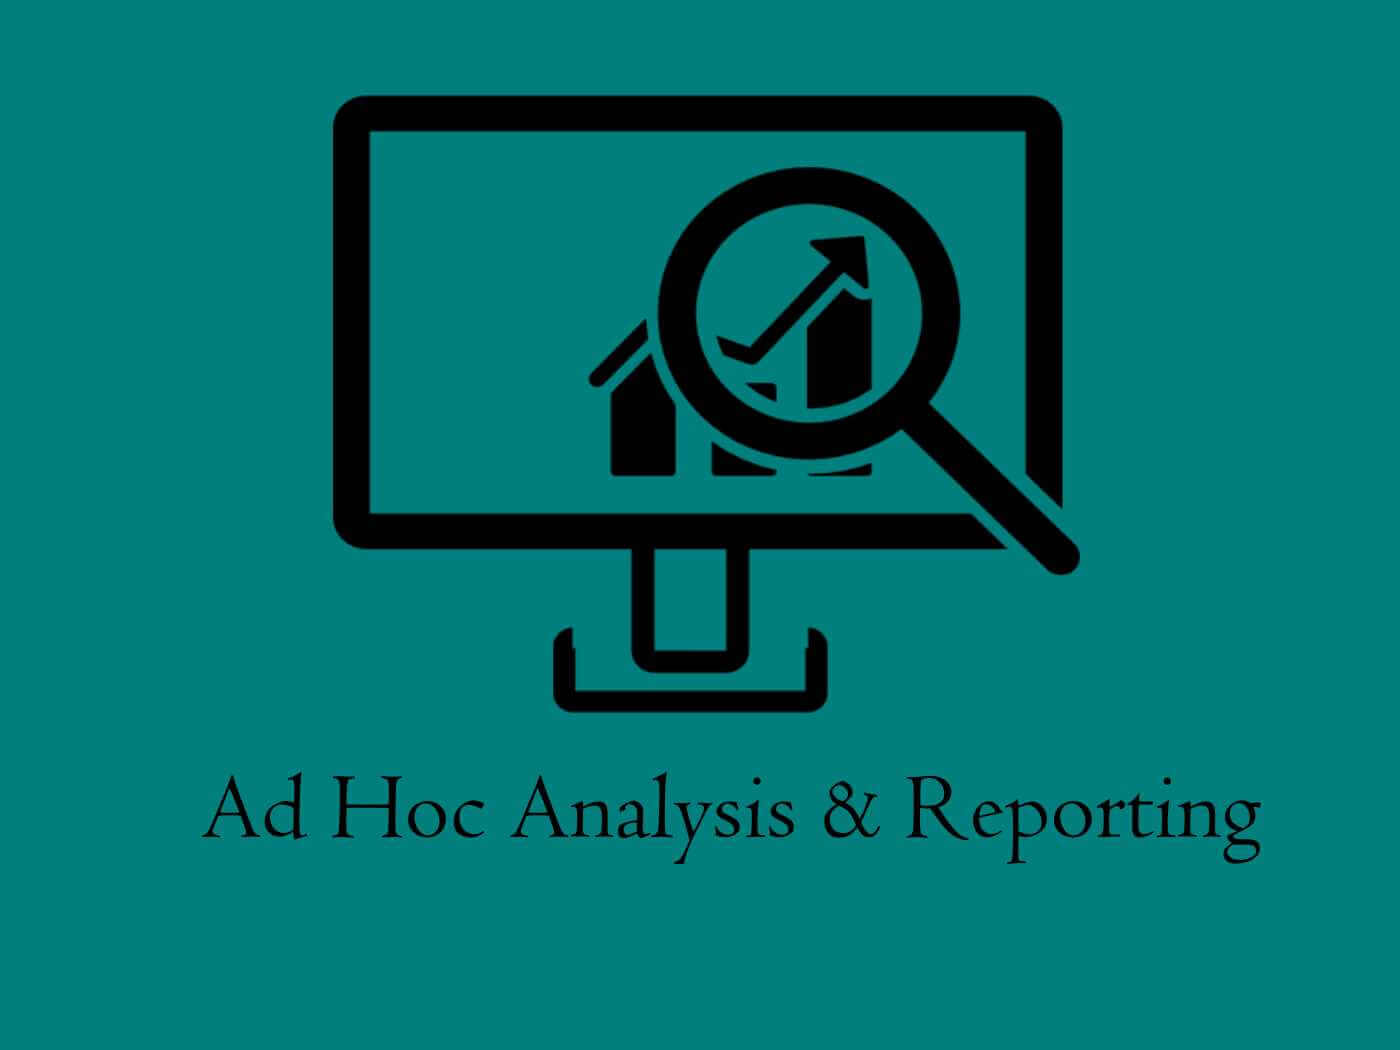 Ad Hoc Analysis - Meaning, Types, Uses, Benefits & Examples